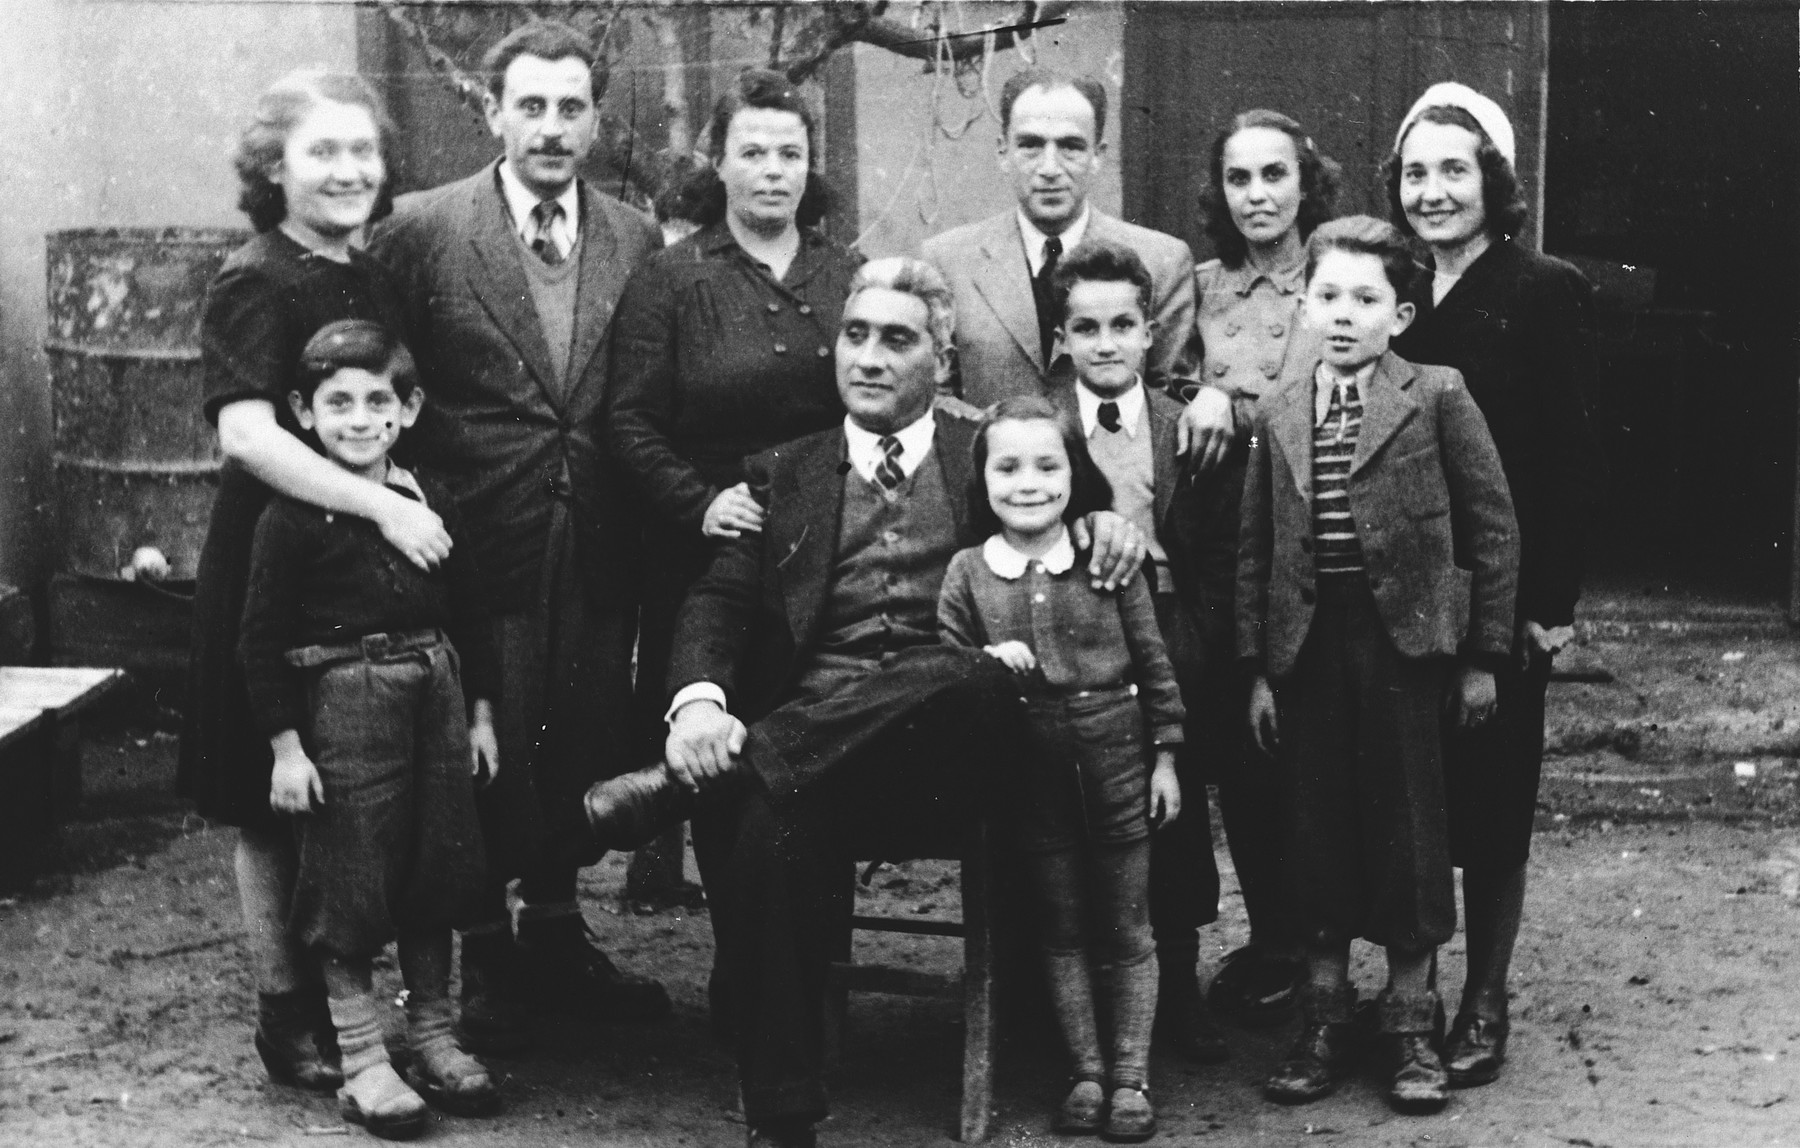 Group portrait of Jewish refugee families from Yugoslavia who have fled to Tirana, Albania.  Among those pictured are Majer and Mimi Altarac (top row, fourth and fifth from the left) and their son, Jasa (in front of Majer), and Mosa and Gabriela Mandil (top row, first and second on the left), their son, Gavra (in front of Gabriela), and daughter Irena (front row, center).